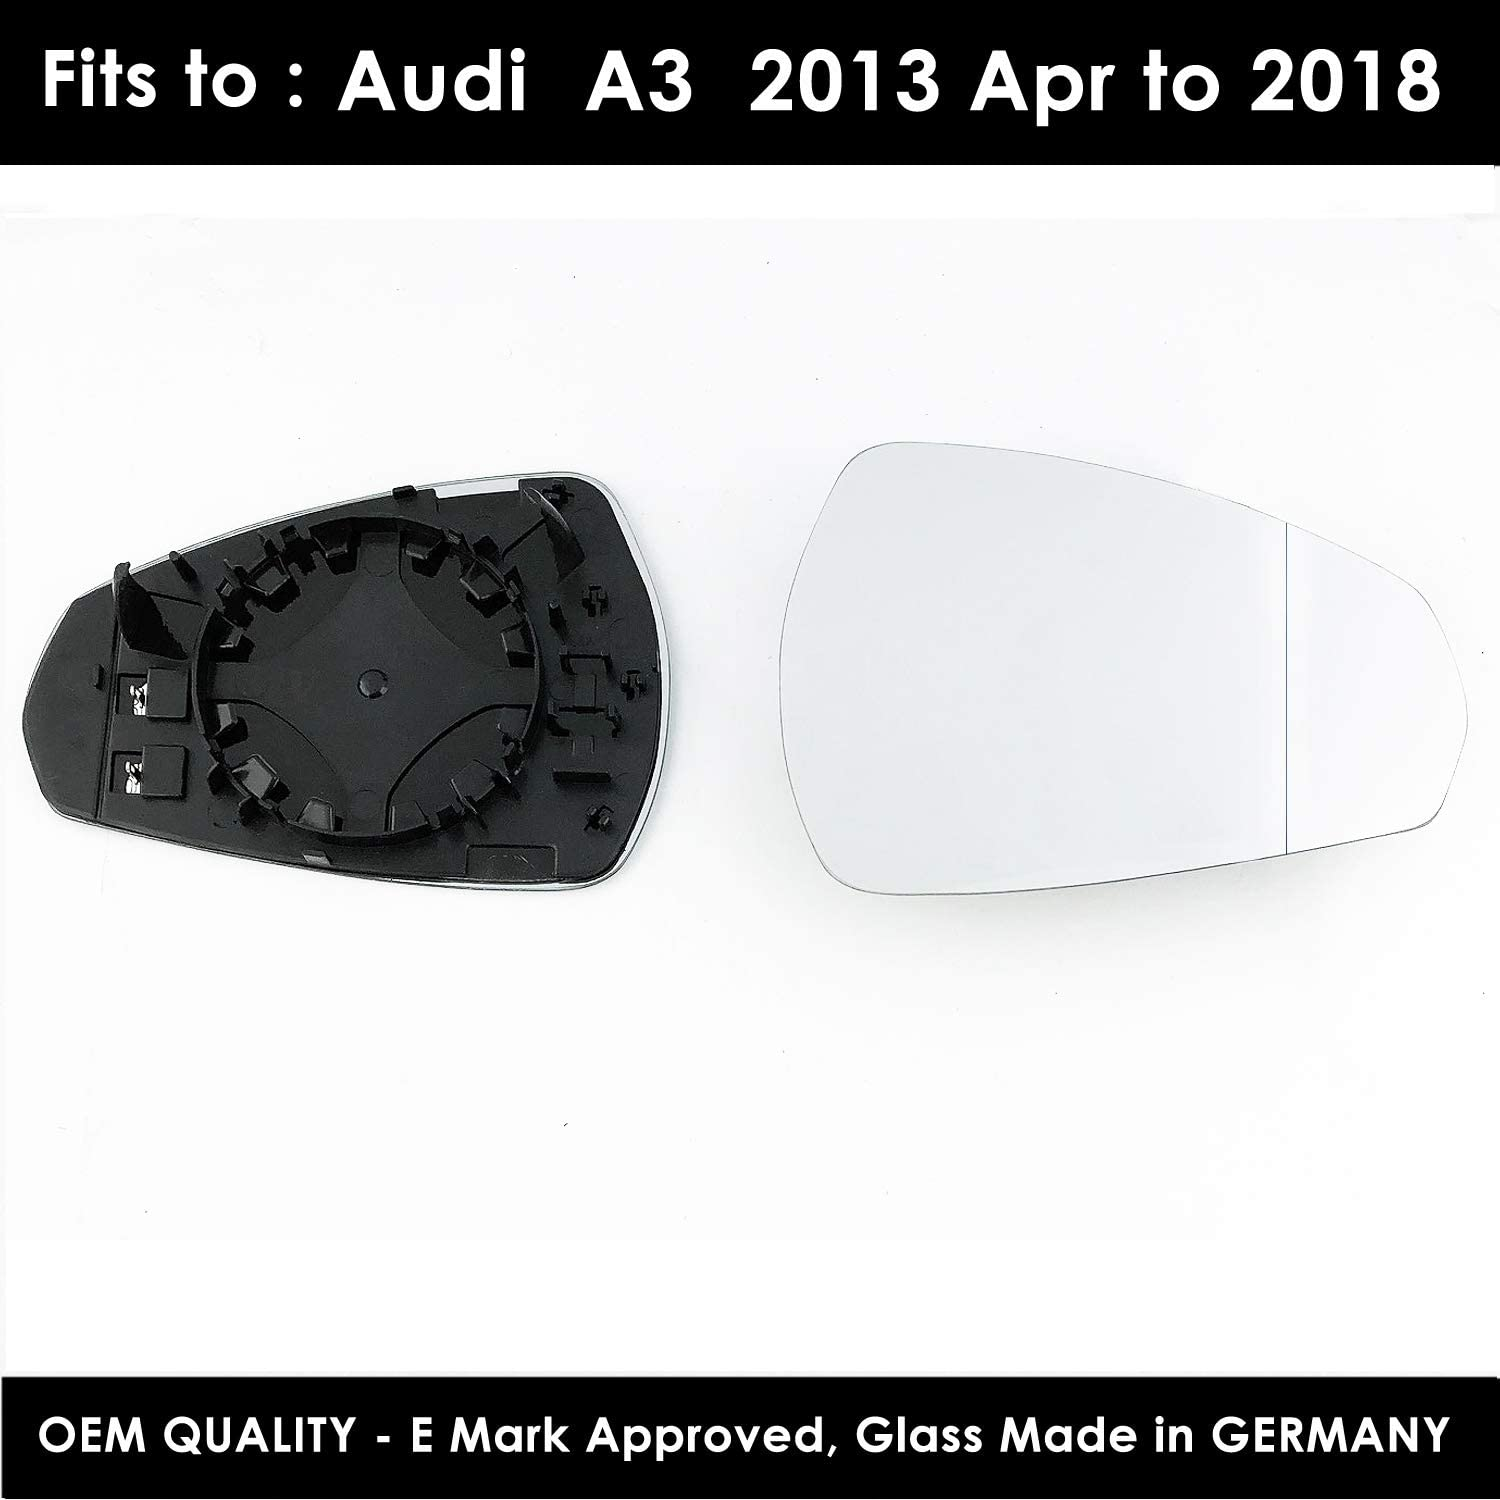 A3 RIGHT SIDE Wing Mirror Glass Wide Angle Fors Without Indicators 2003 Jun to 2007